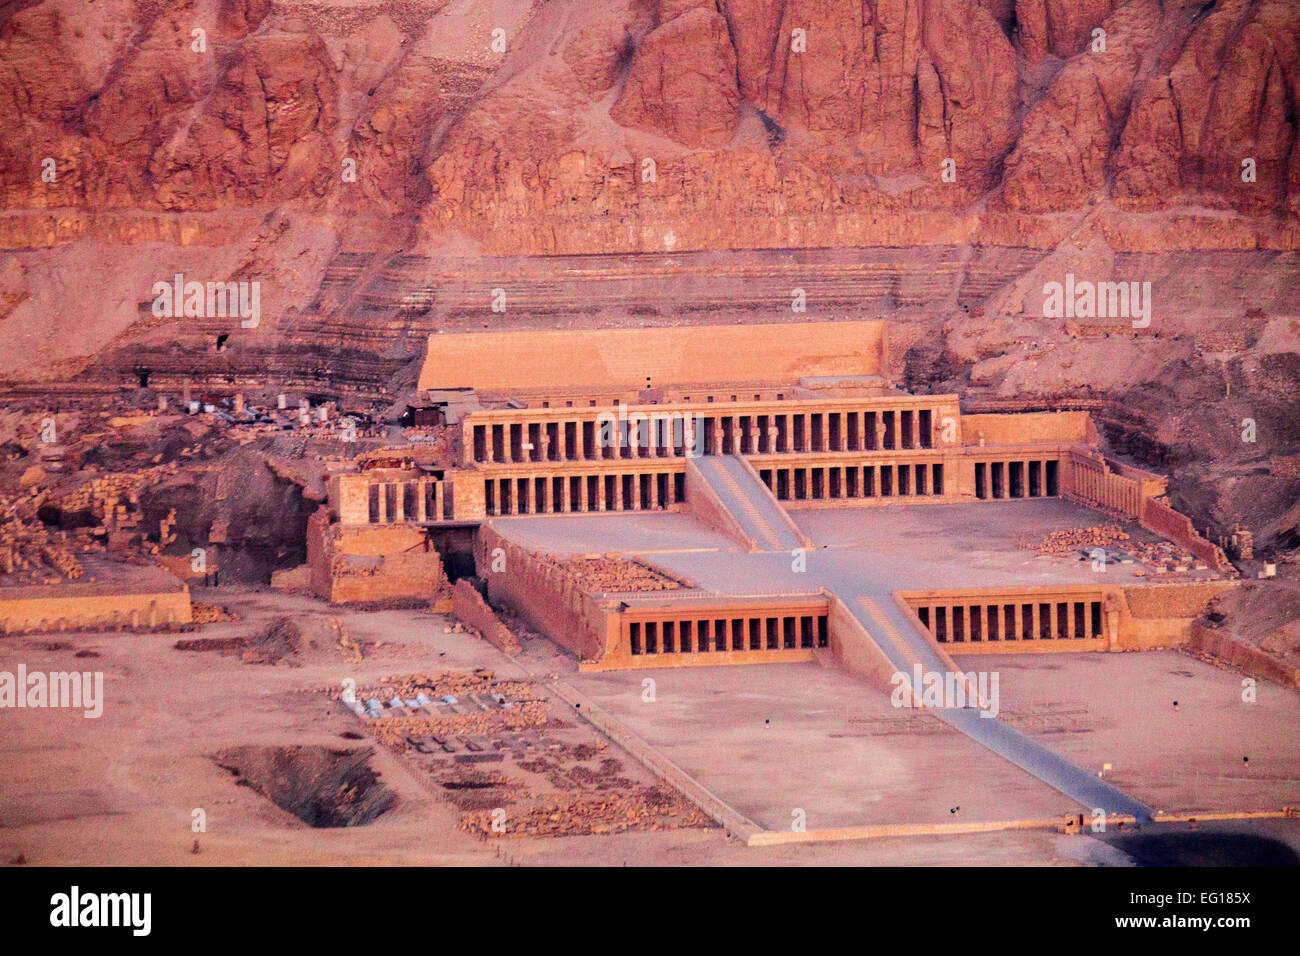 Aerial view of the Temple of Queen Hatshepsut in Deir el ...